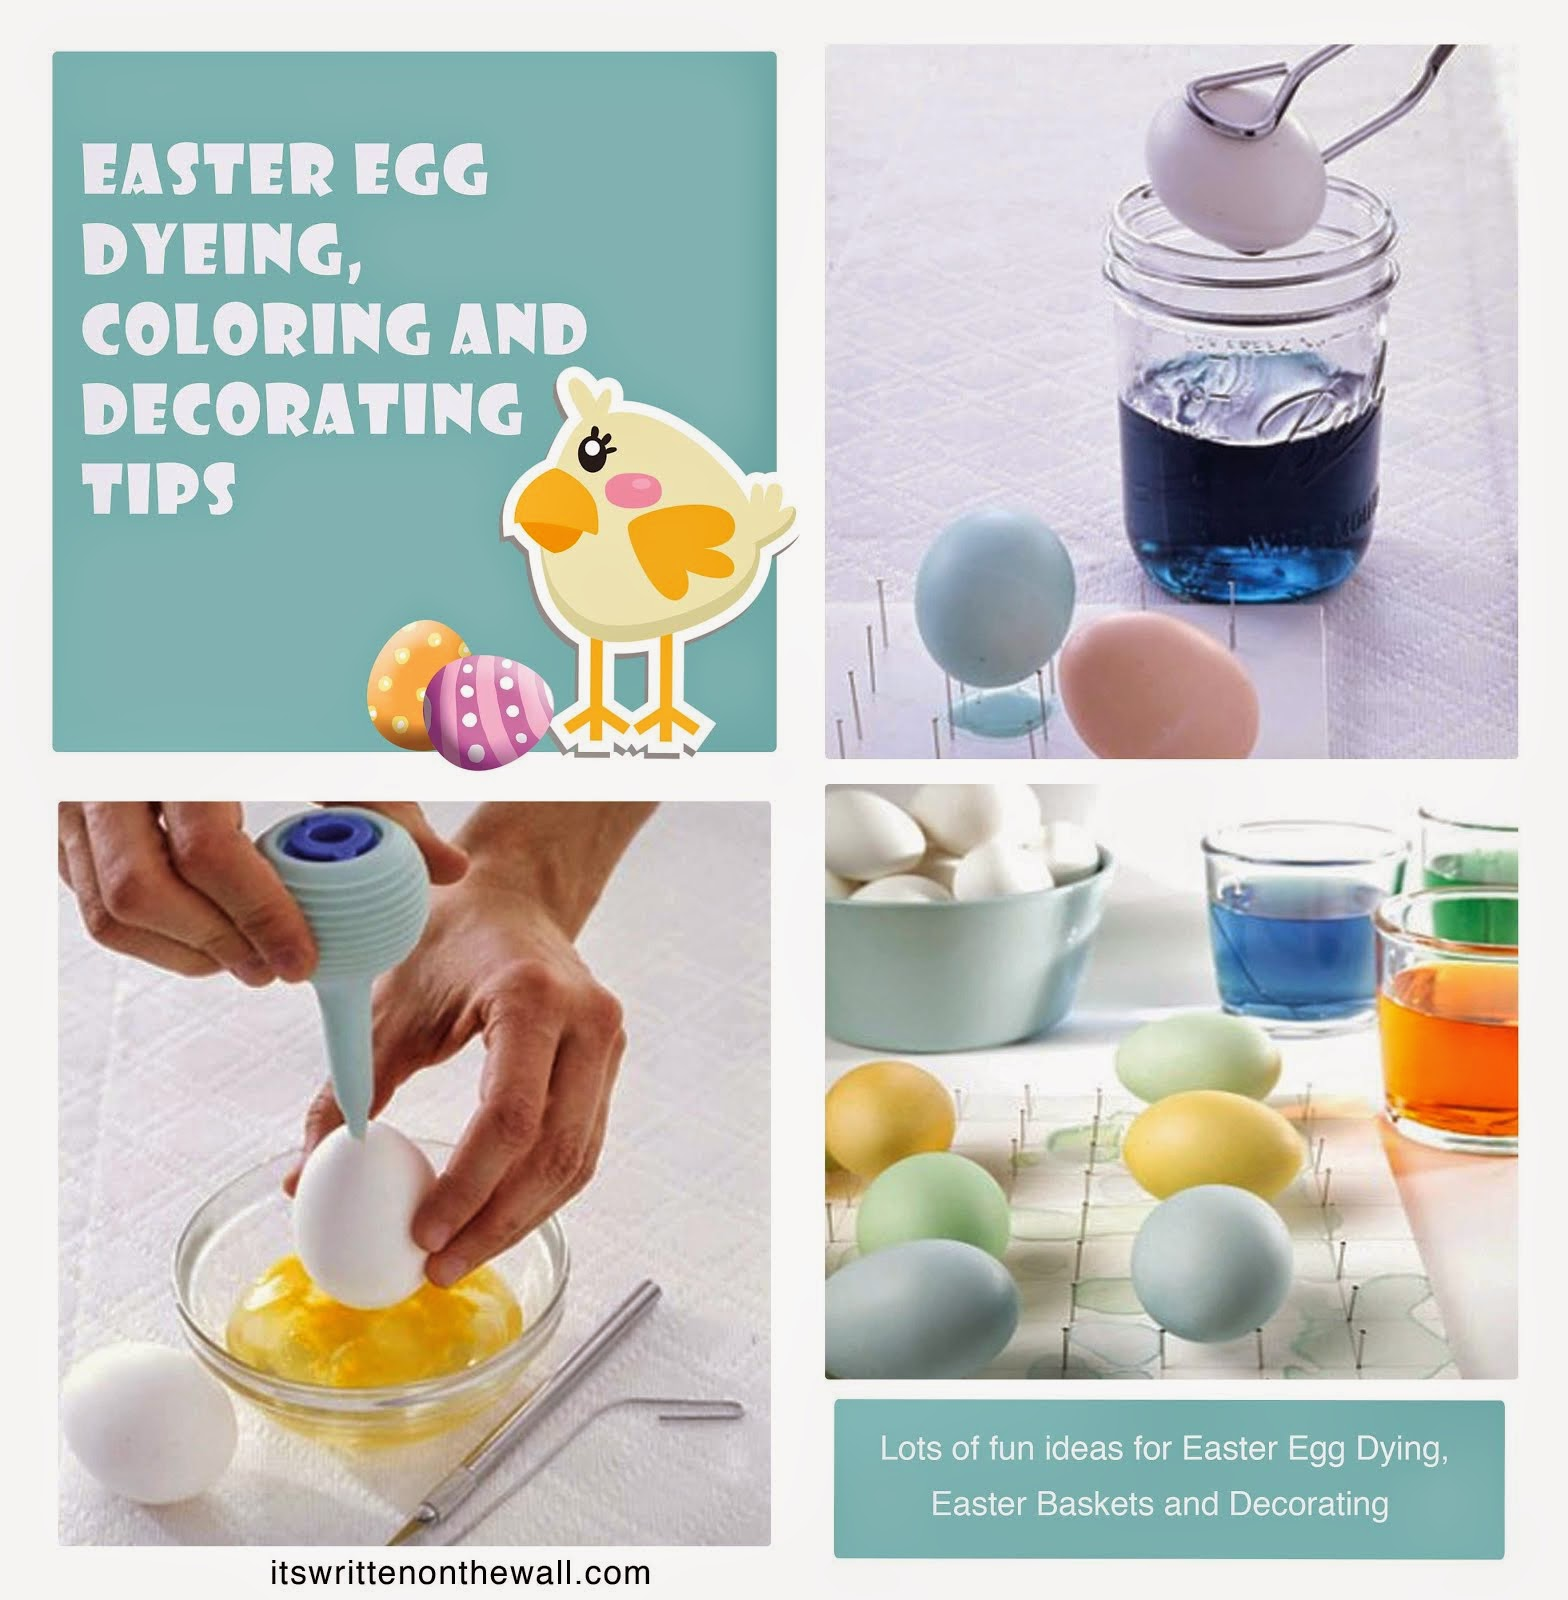 Easter Egg Coloring & Decorating Tips